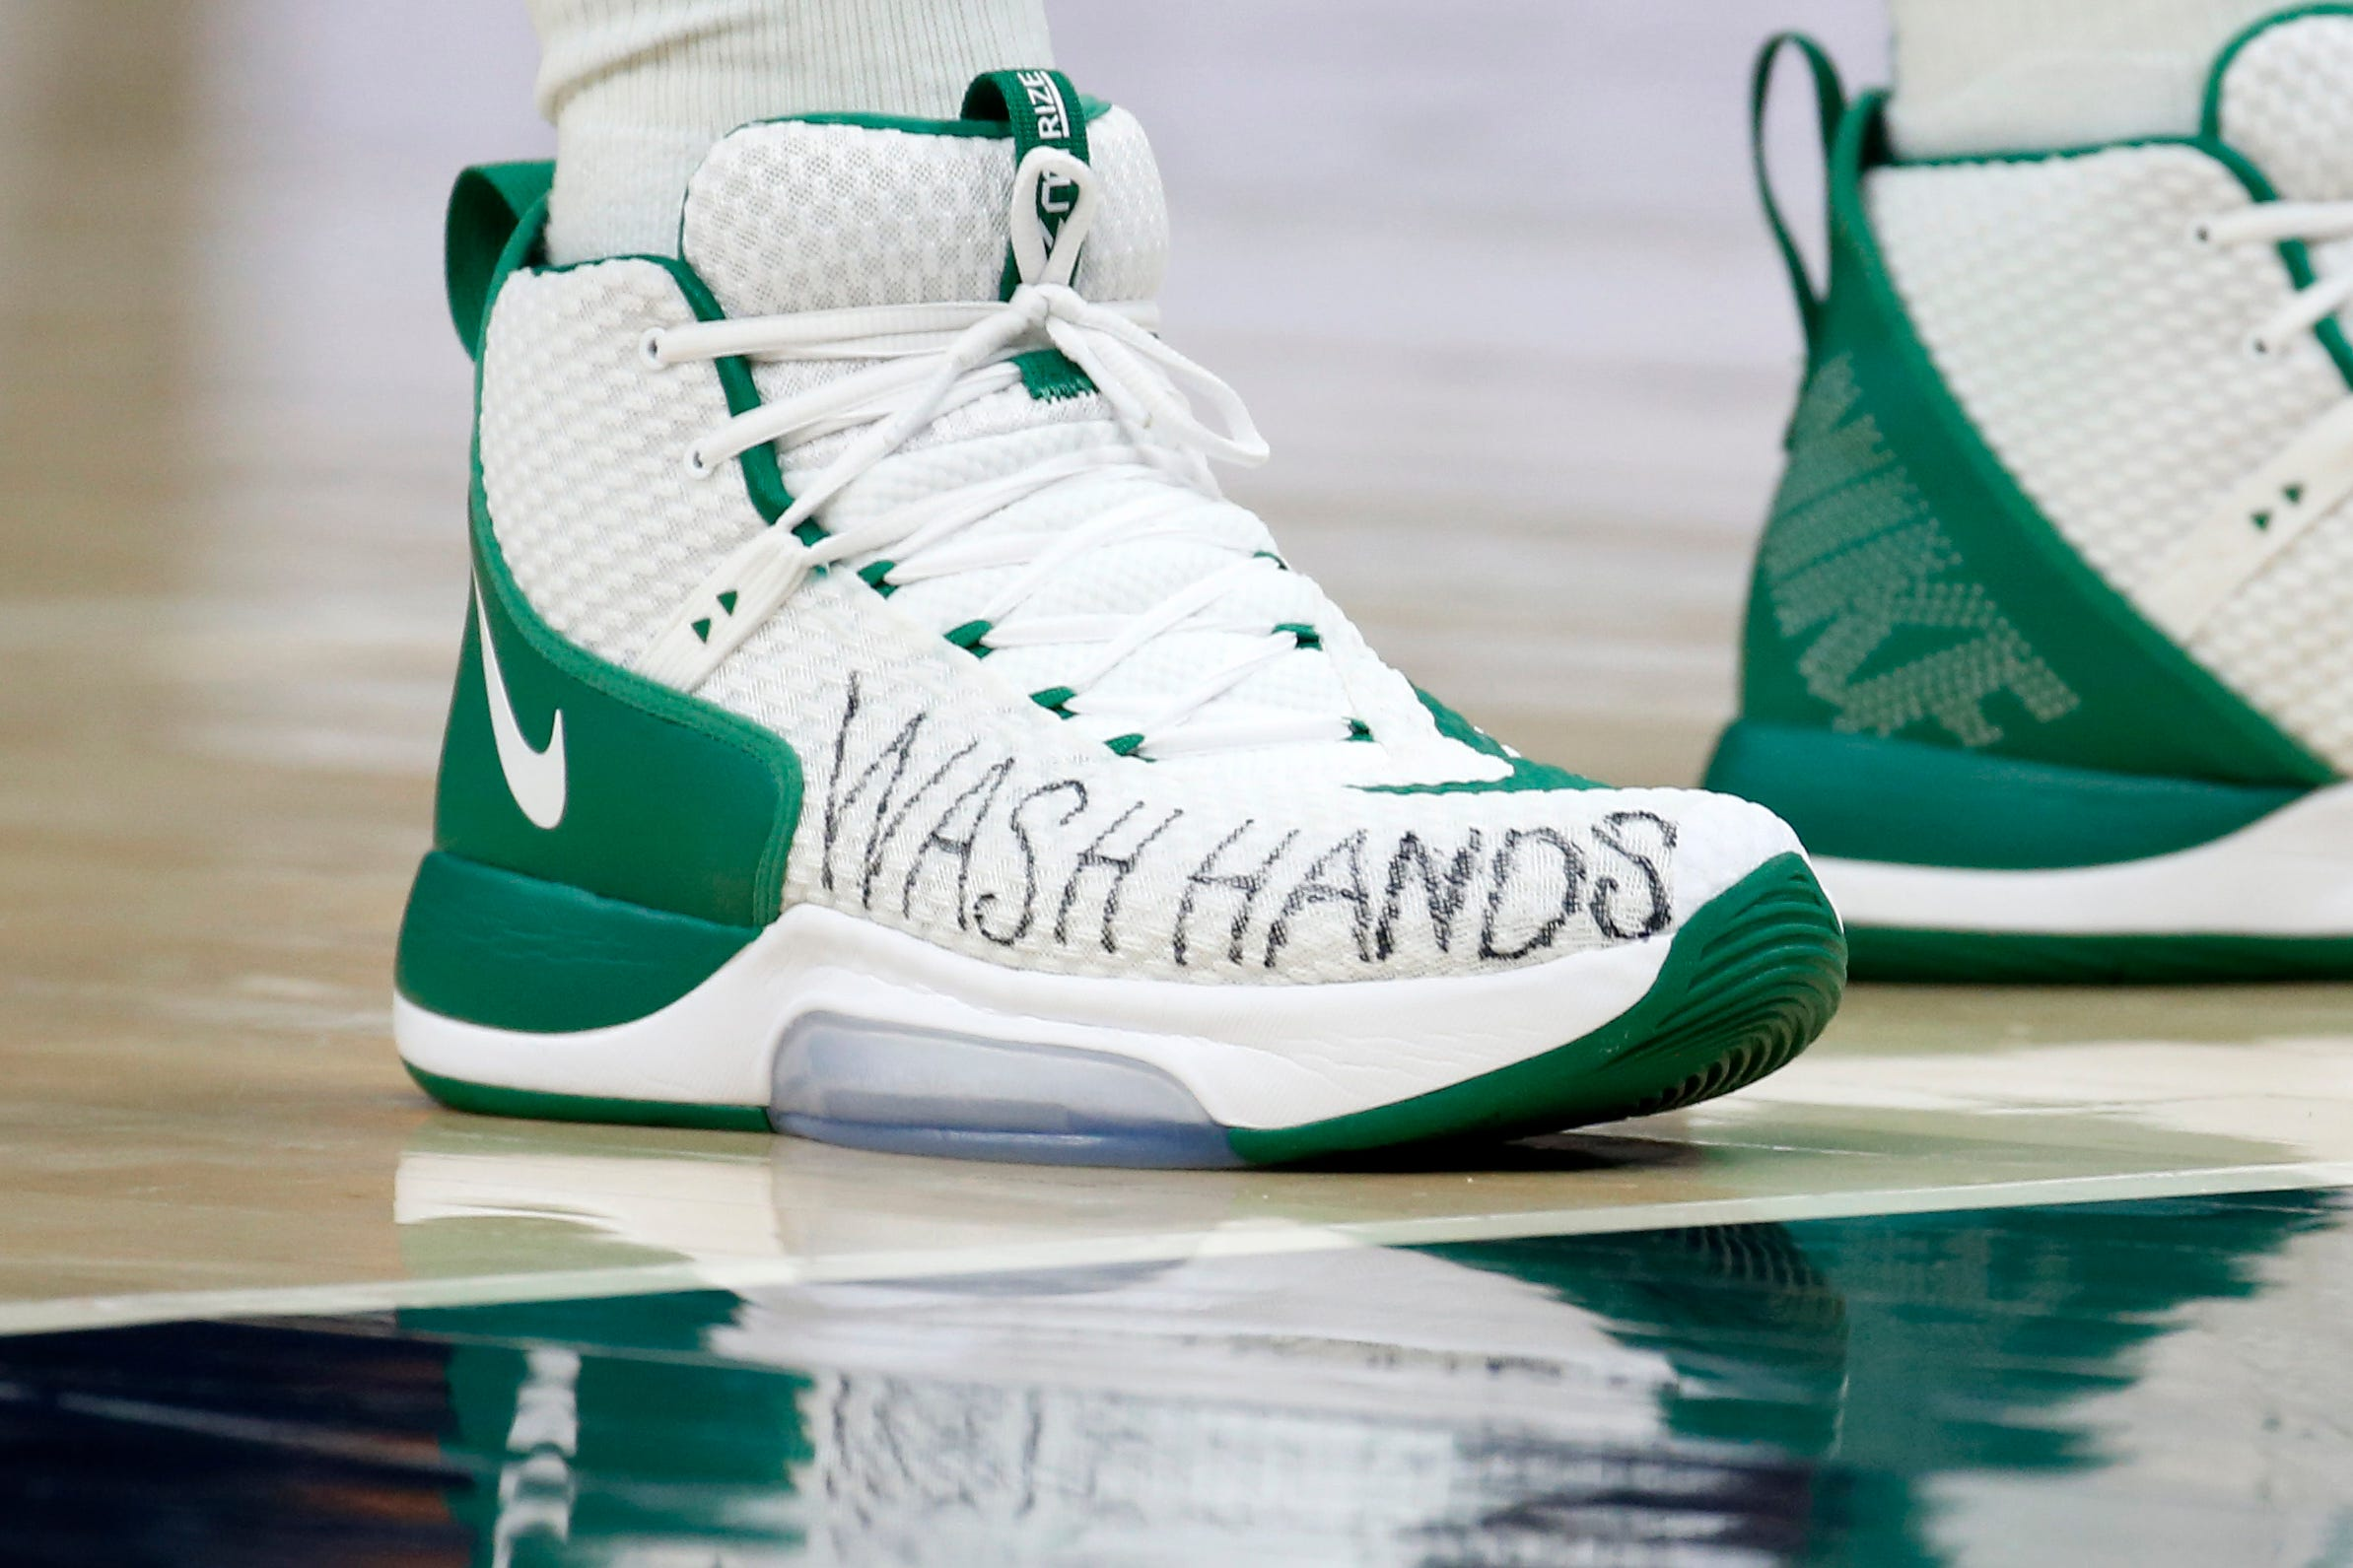 coolest basketball shoes